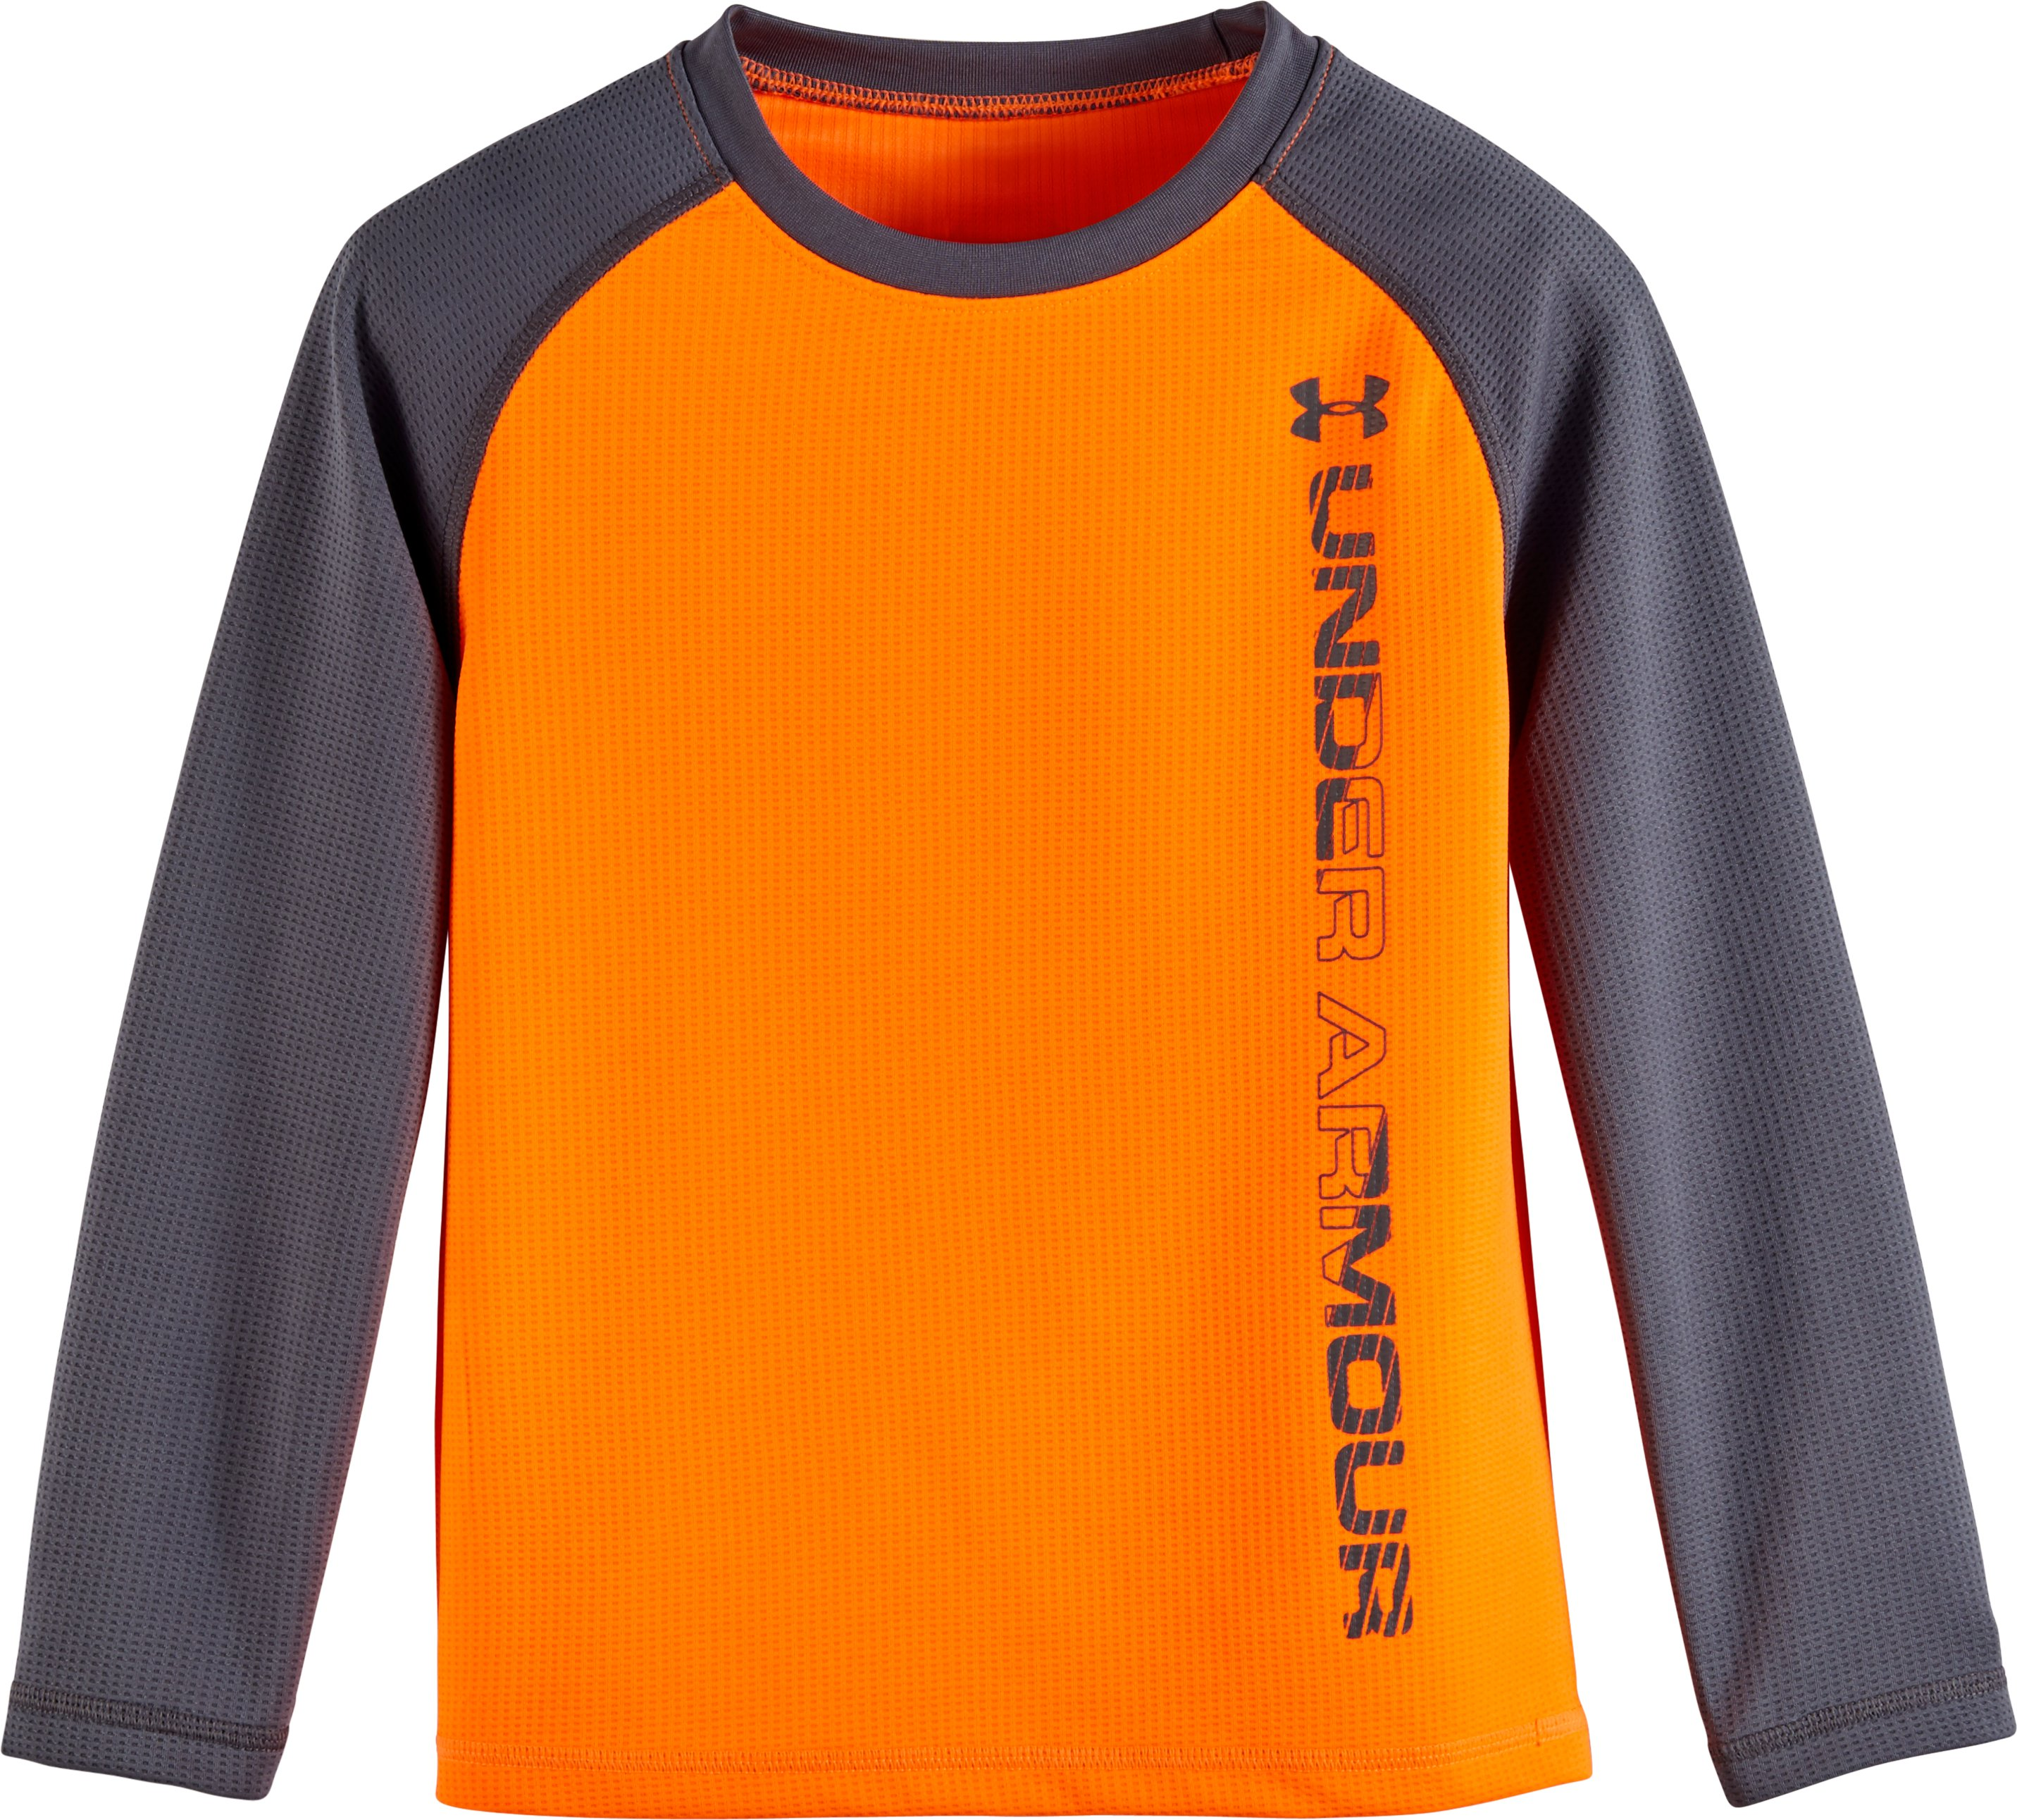 Boys' Pre-School UA Waffle Crew Long Sleeve, Blaze Orange, zoomed image